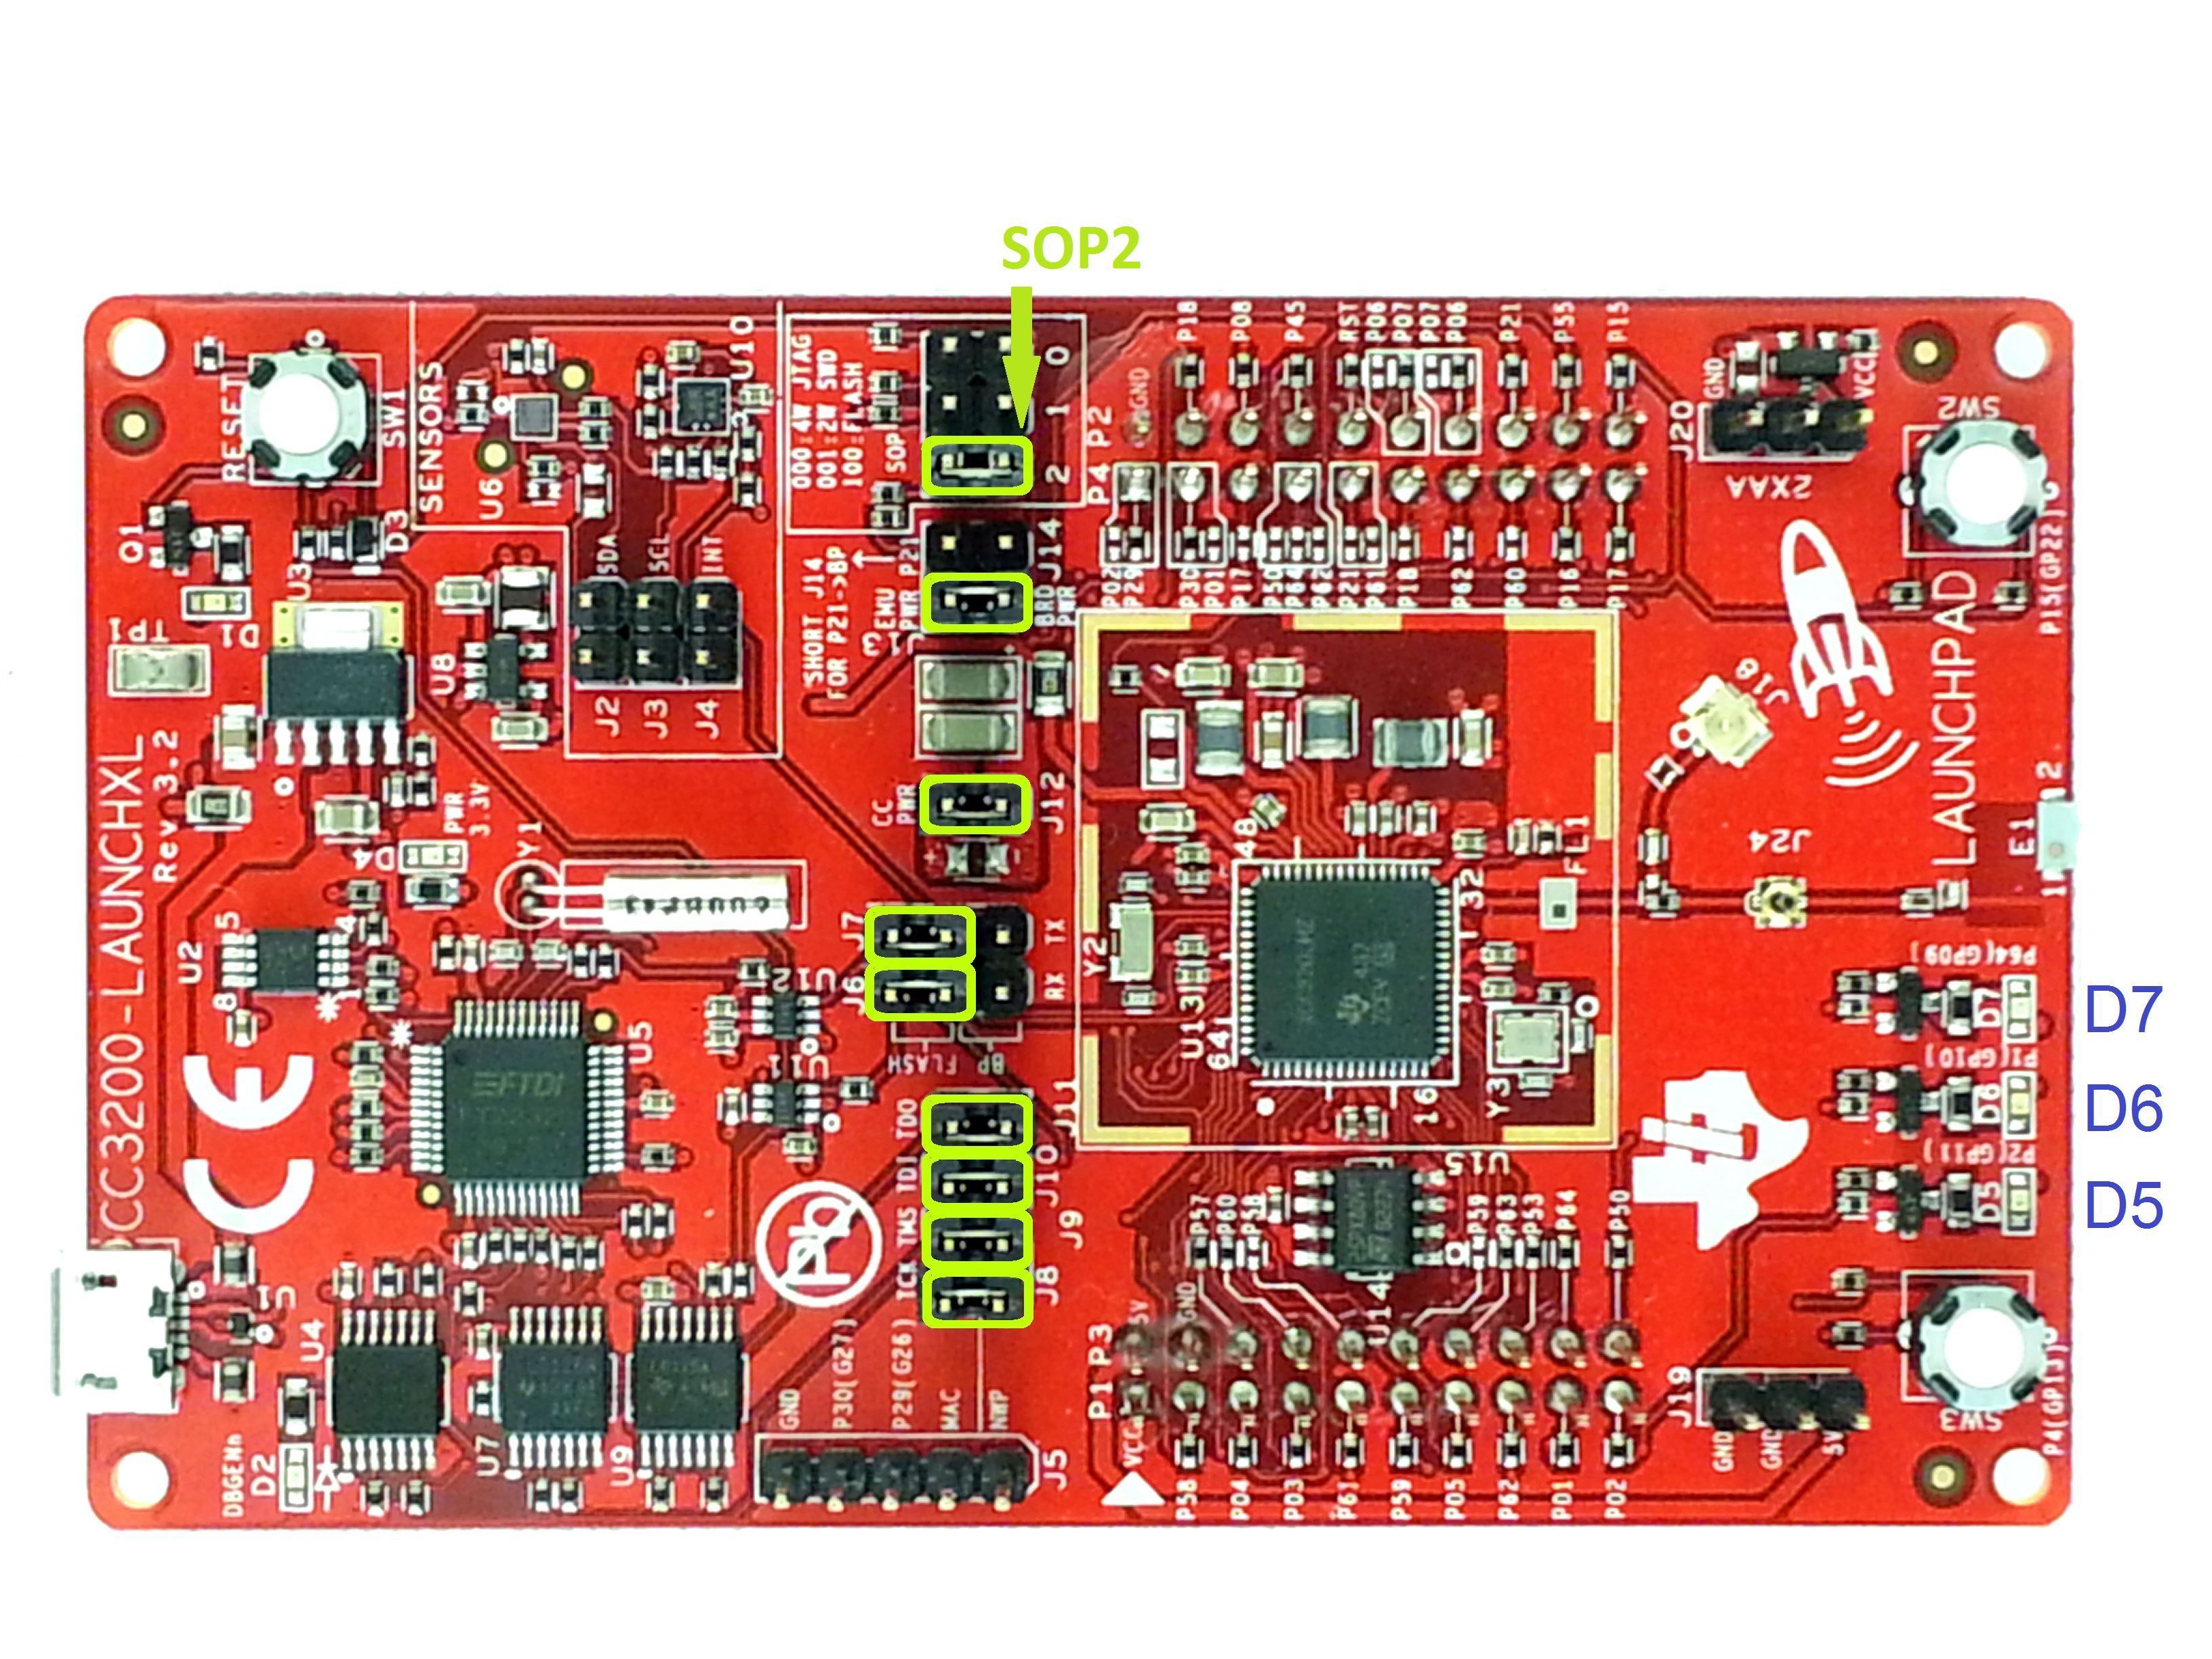 Cc3200 Launch Pad Does Not Turn On Wi Fi Forum Ti E2e Highspeed Amplifier Circuits Analog Wire Blogs Community I Tried Pressing The Reset Button And Placing Jumper Sop2 Again But It Did Work Launchpad Is Detected By Computer Can Be